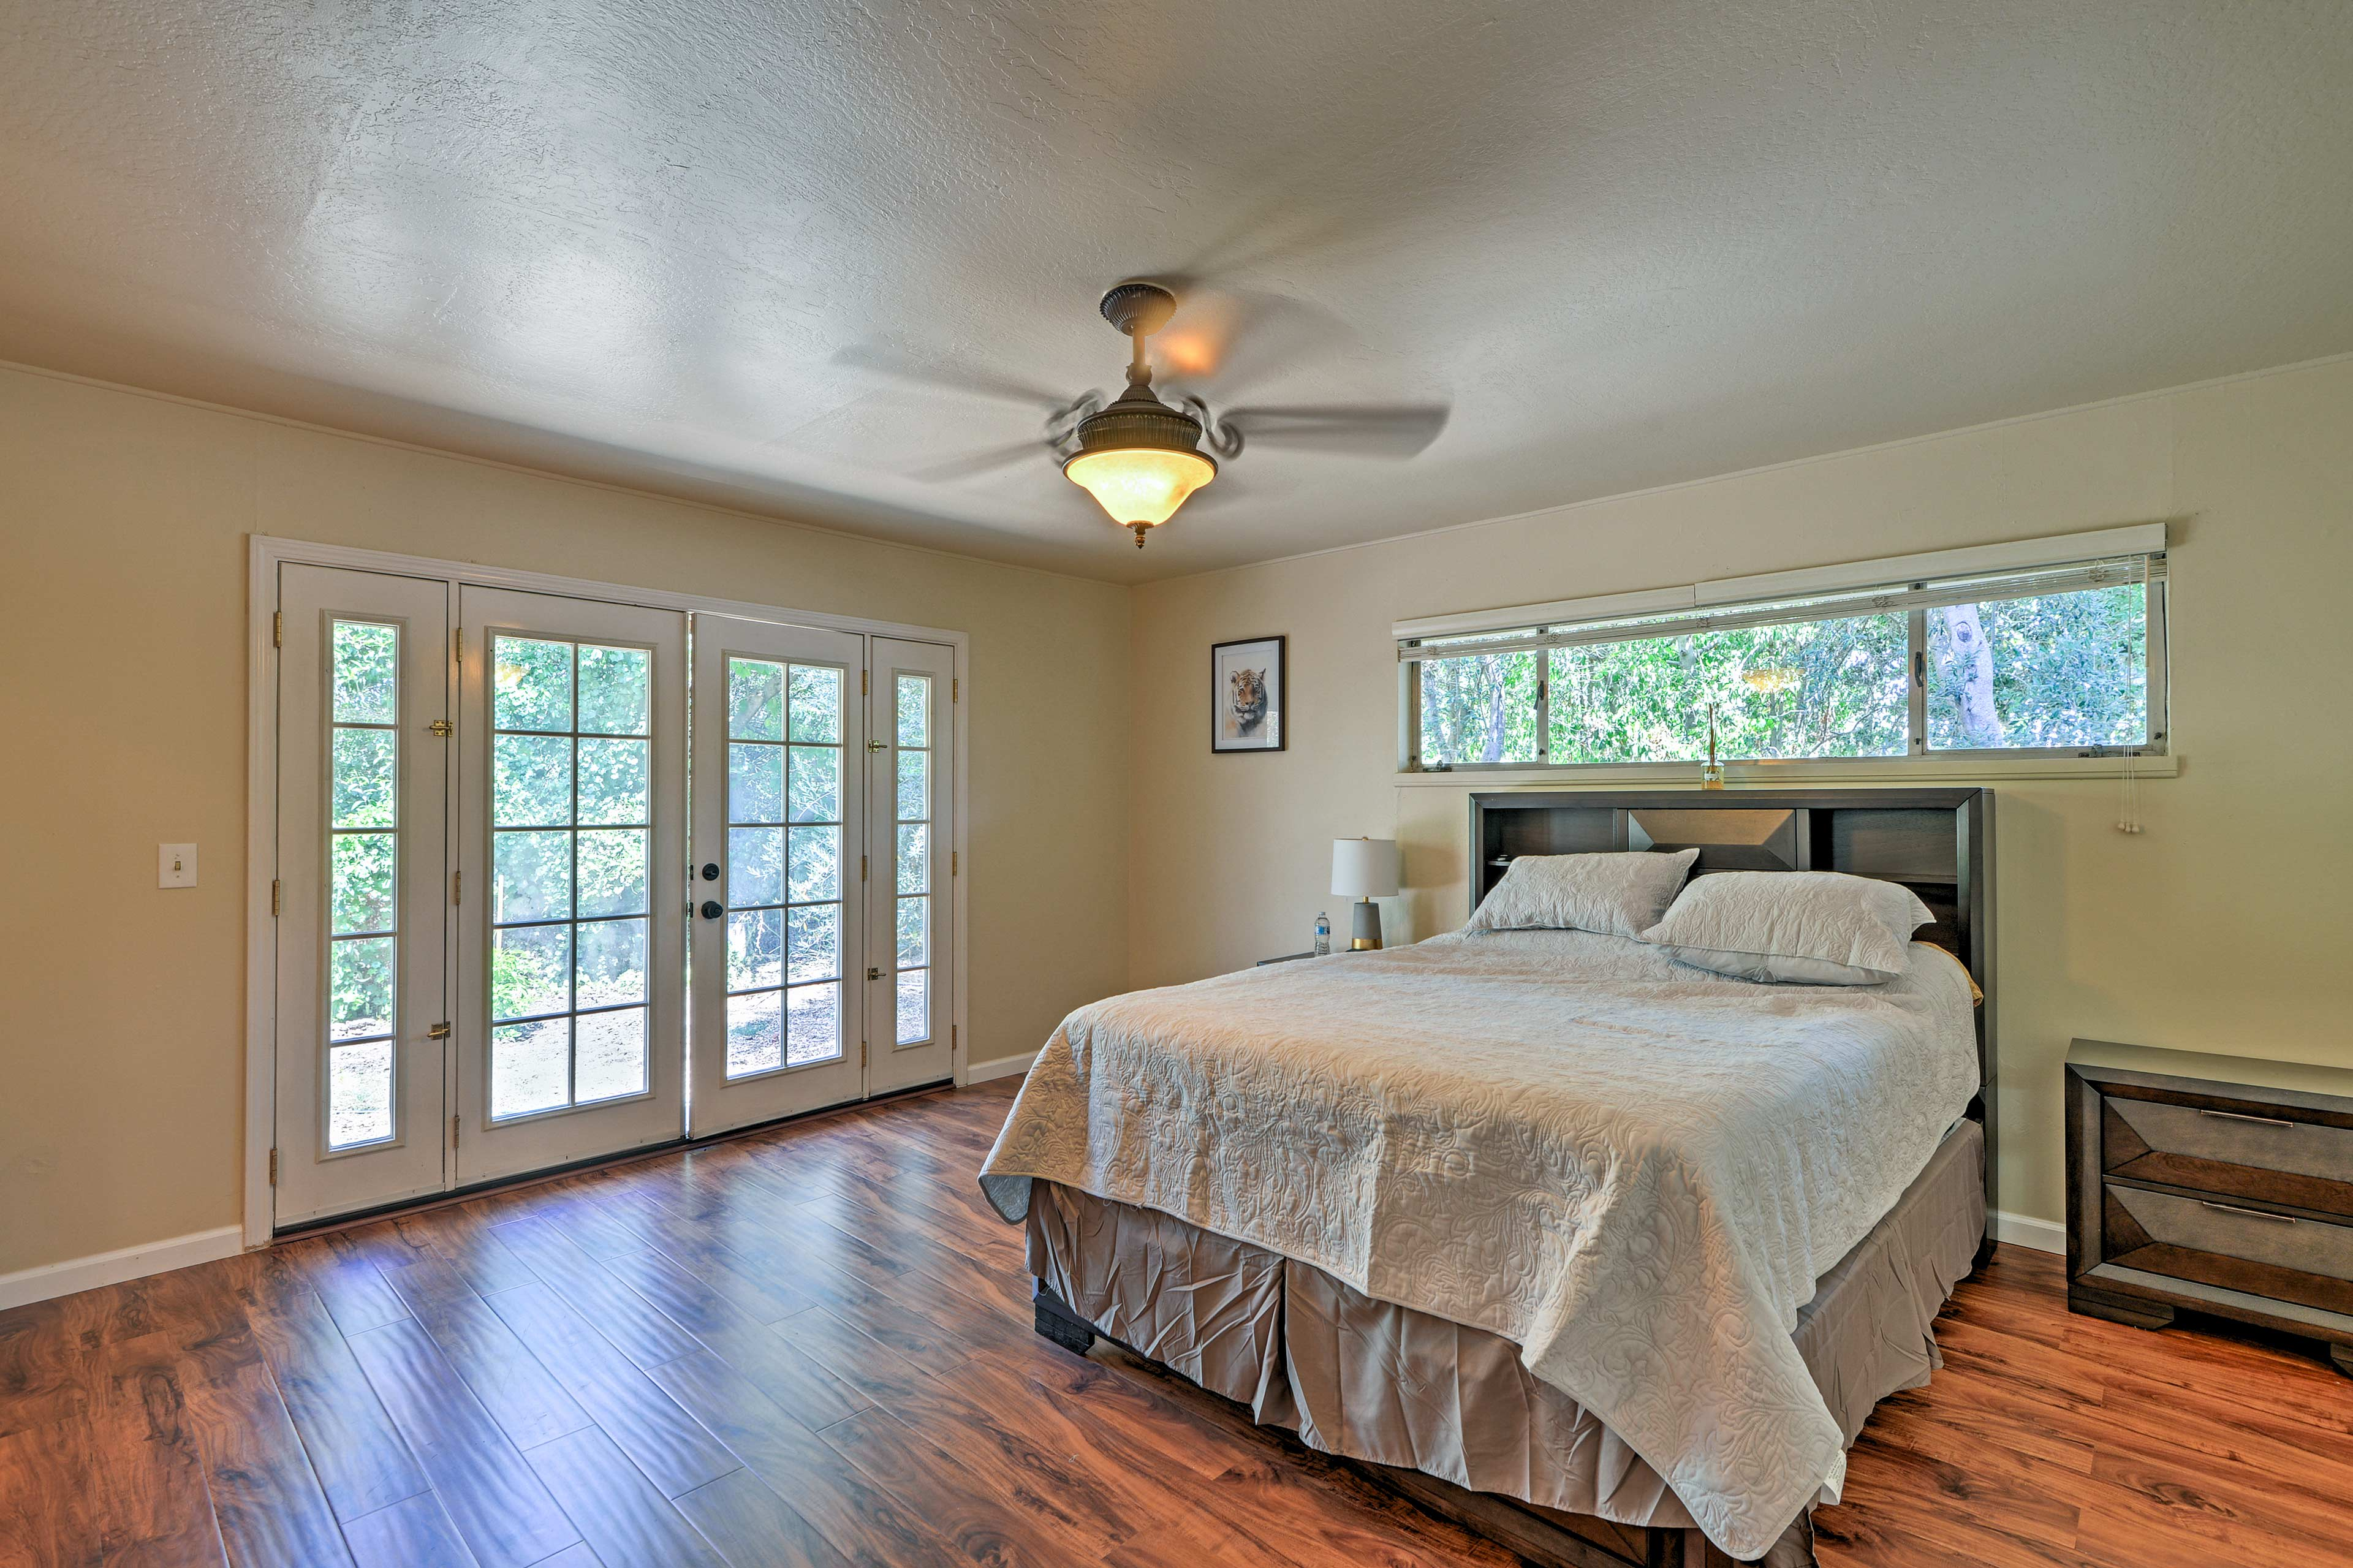 Drift off in the comfy queen bed in the master bedroom.